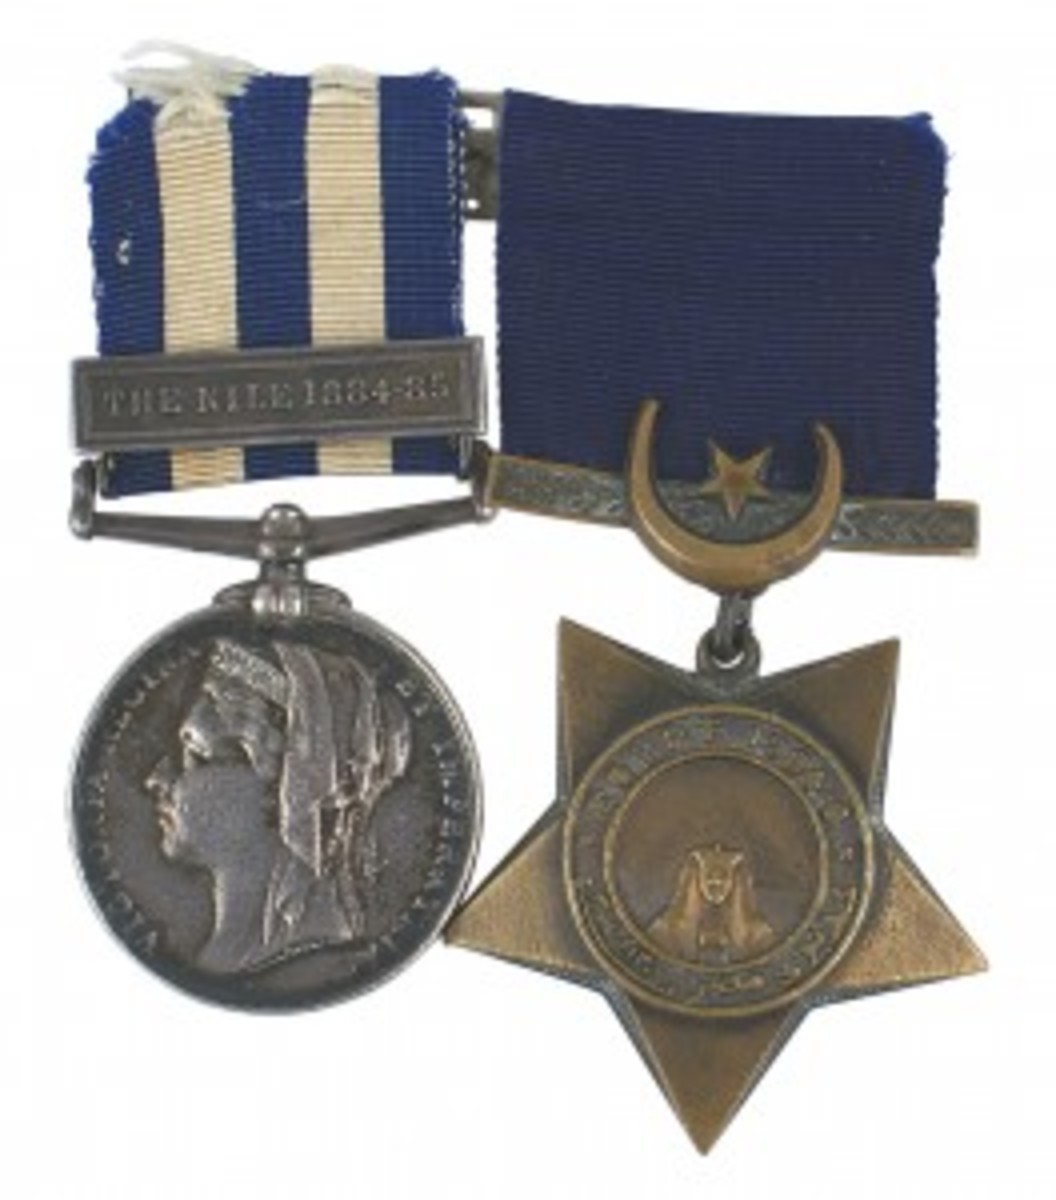 Other noteworthy items included a British medal bar with two medals awarded for the Sudan campaign in the 1880s, one showing a likeness of Queen Victoria and a sphinx and one with a sphinx and pyramids, both mounted on a pin-back bar ($519 the pair)